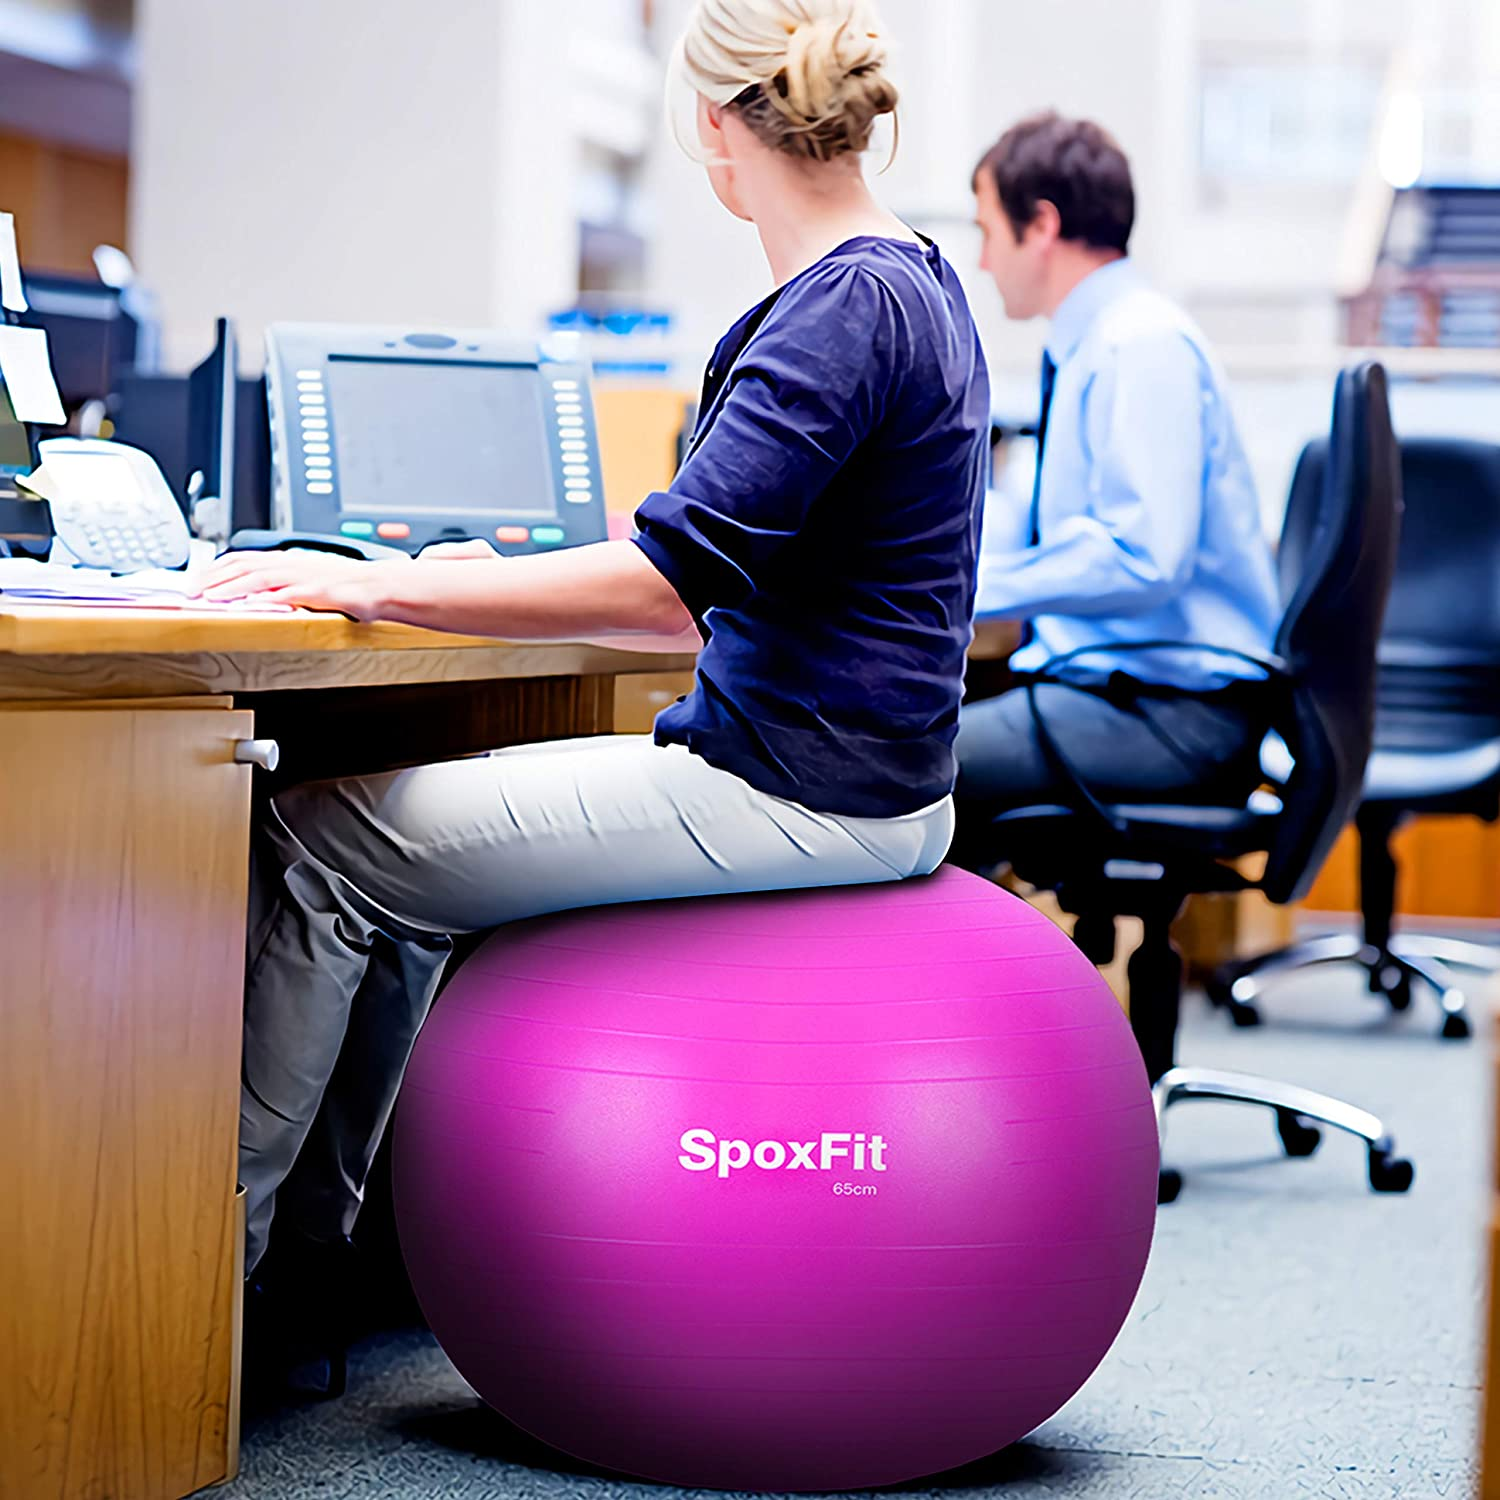 Super Strong Holds 660lbs Set Includes Stable Base SpoxFit Exercise Ball Chair with Resistance Bands Yoga Fitness Balance Pump Home Gym Bundle-65cm Perfect for Office Workout Poster